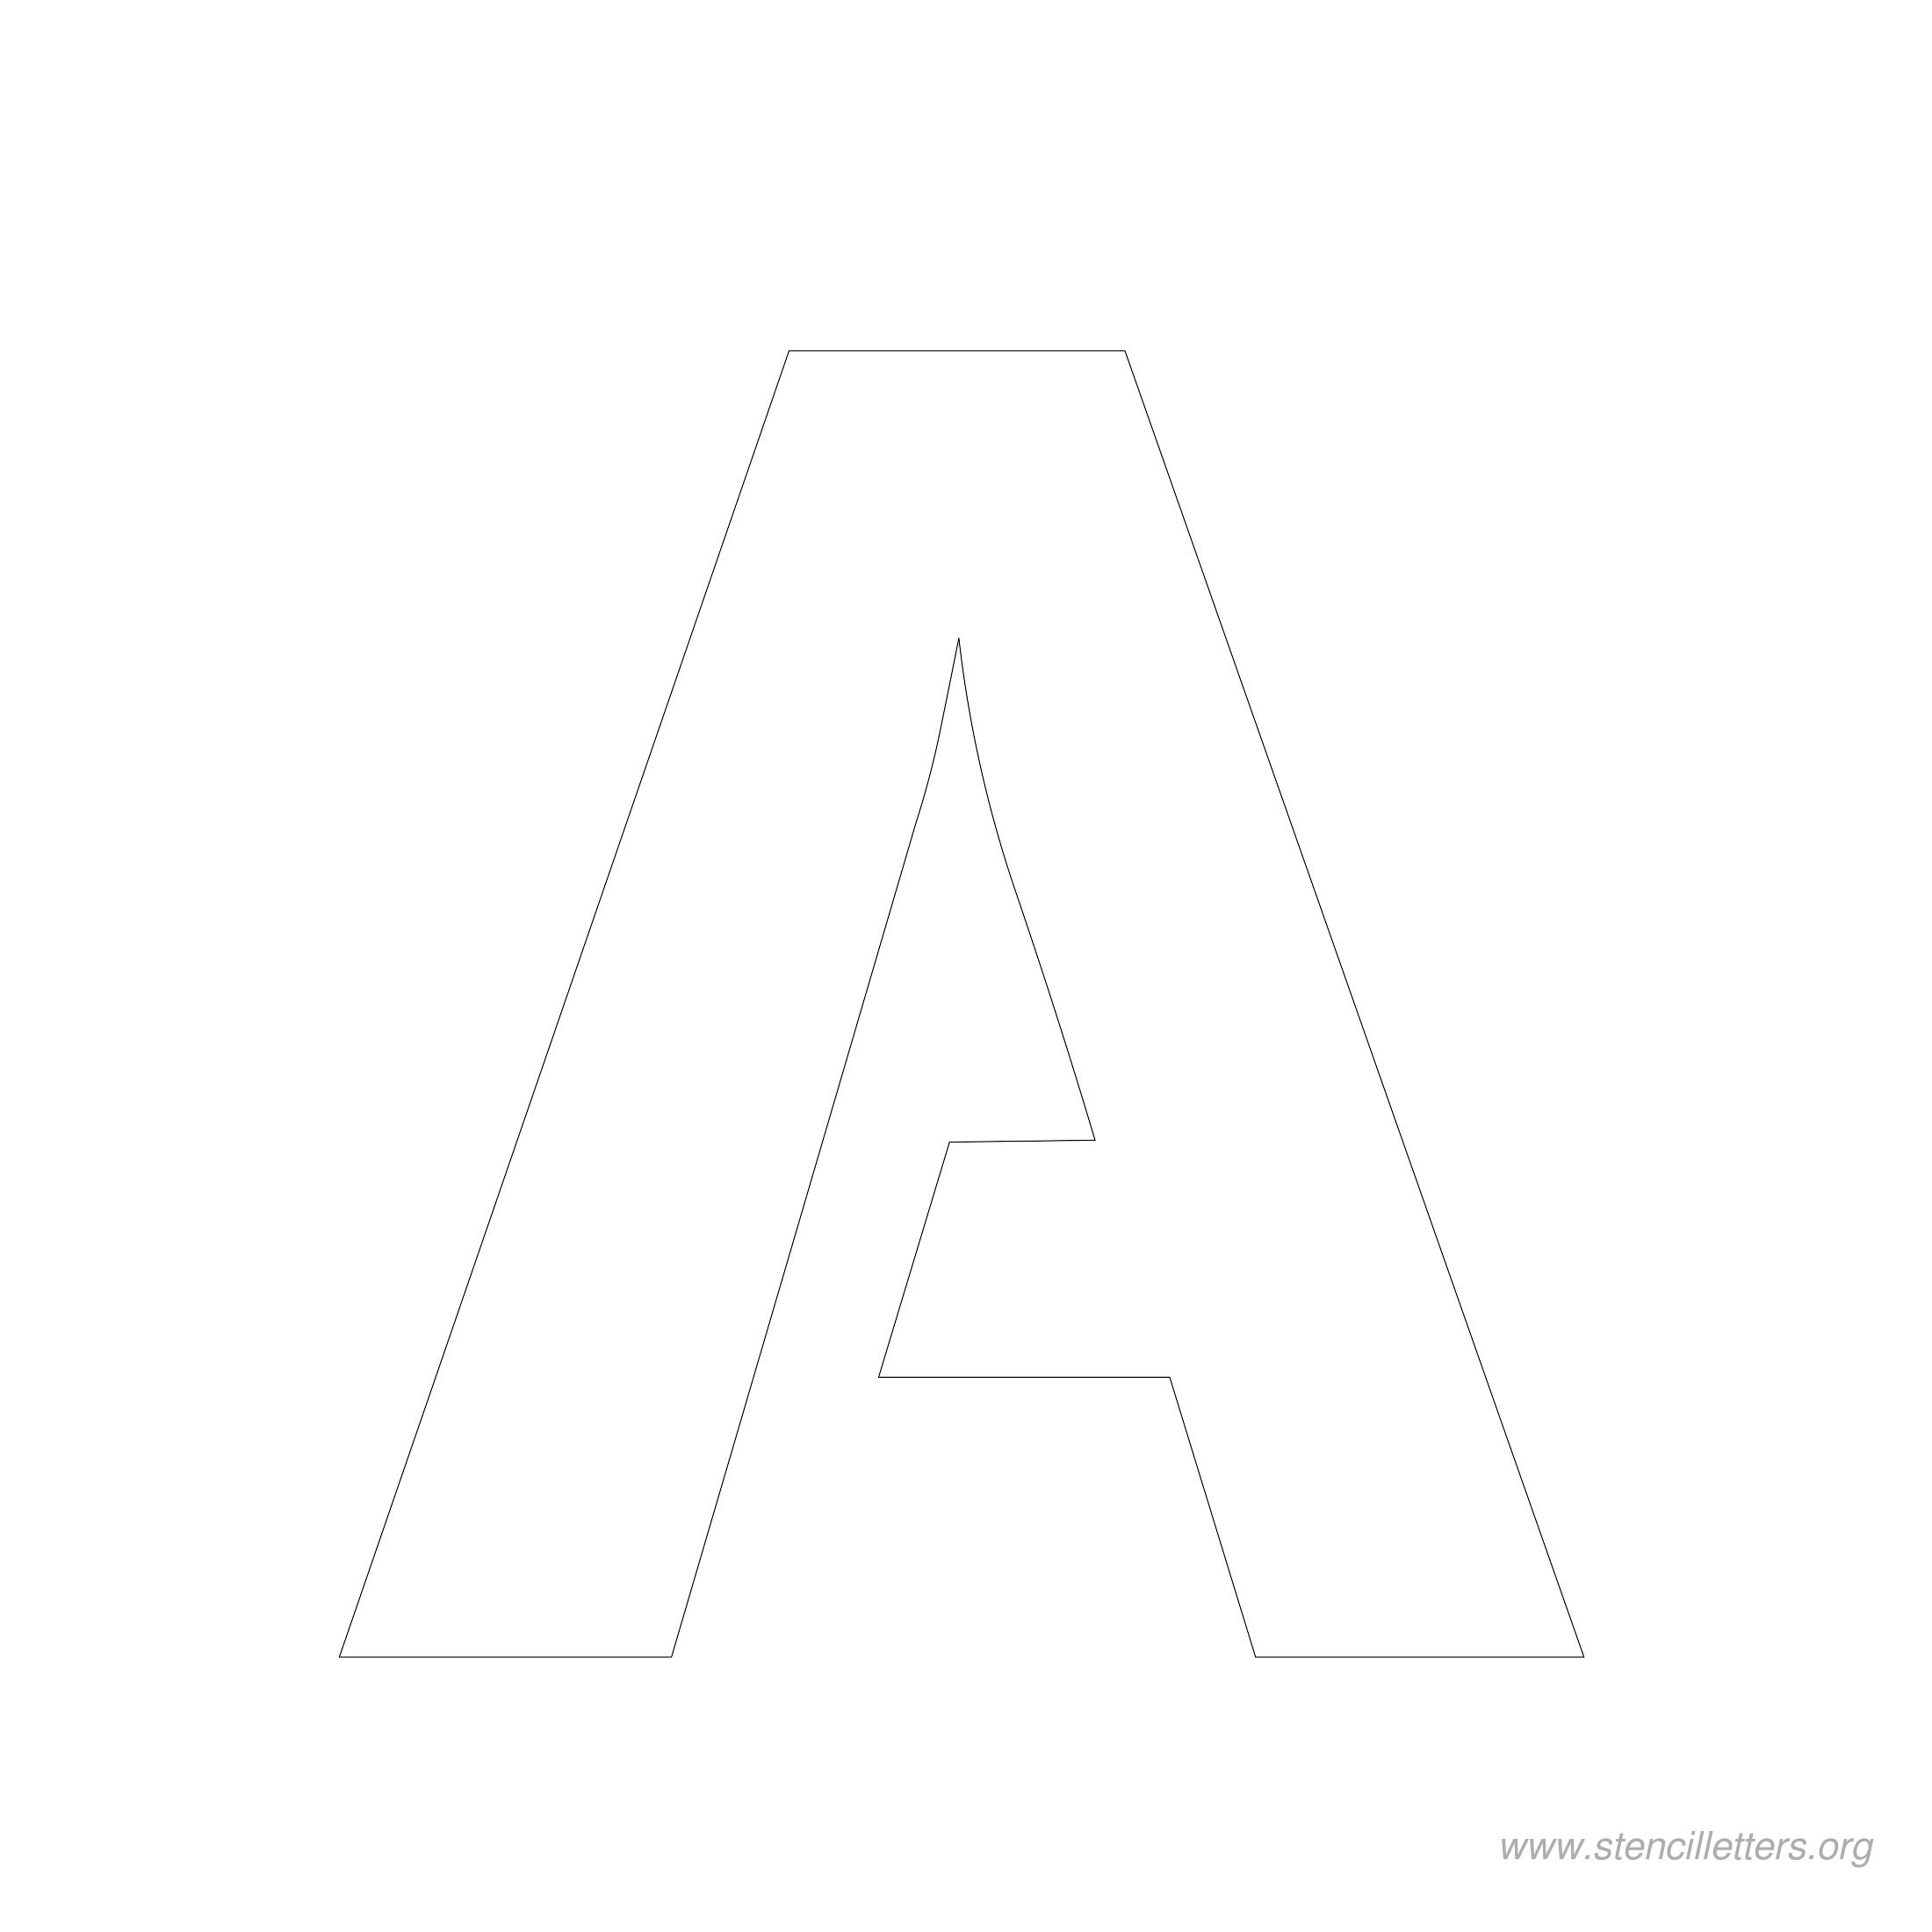 5 Inch Stencil Letters | Stencil Letters Org - Free Printable 10 Inch Letter Stencils